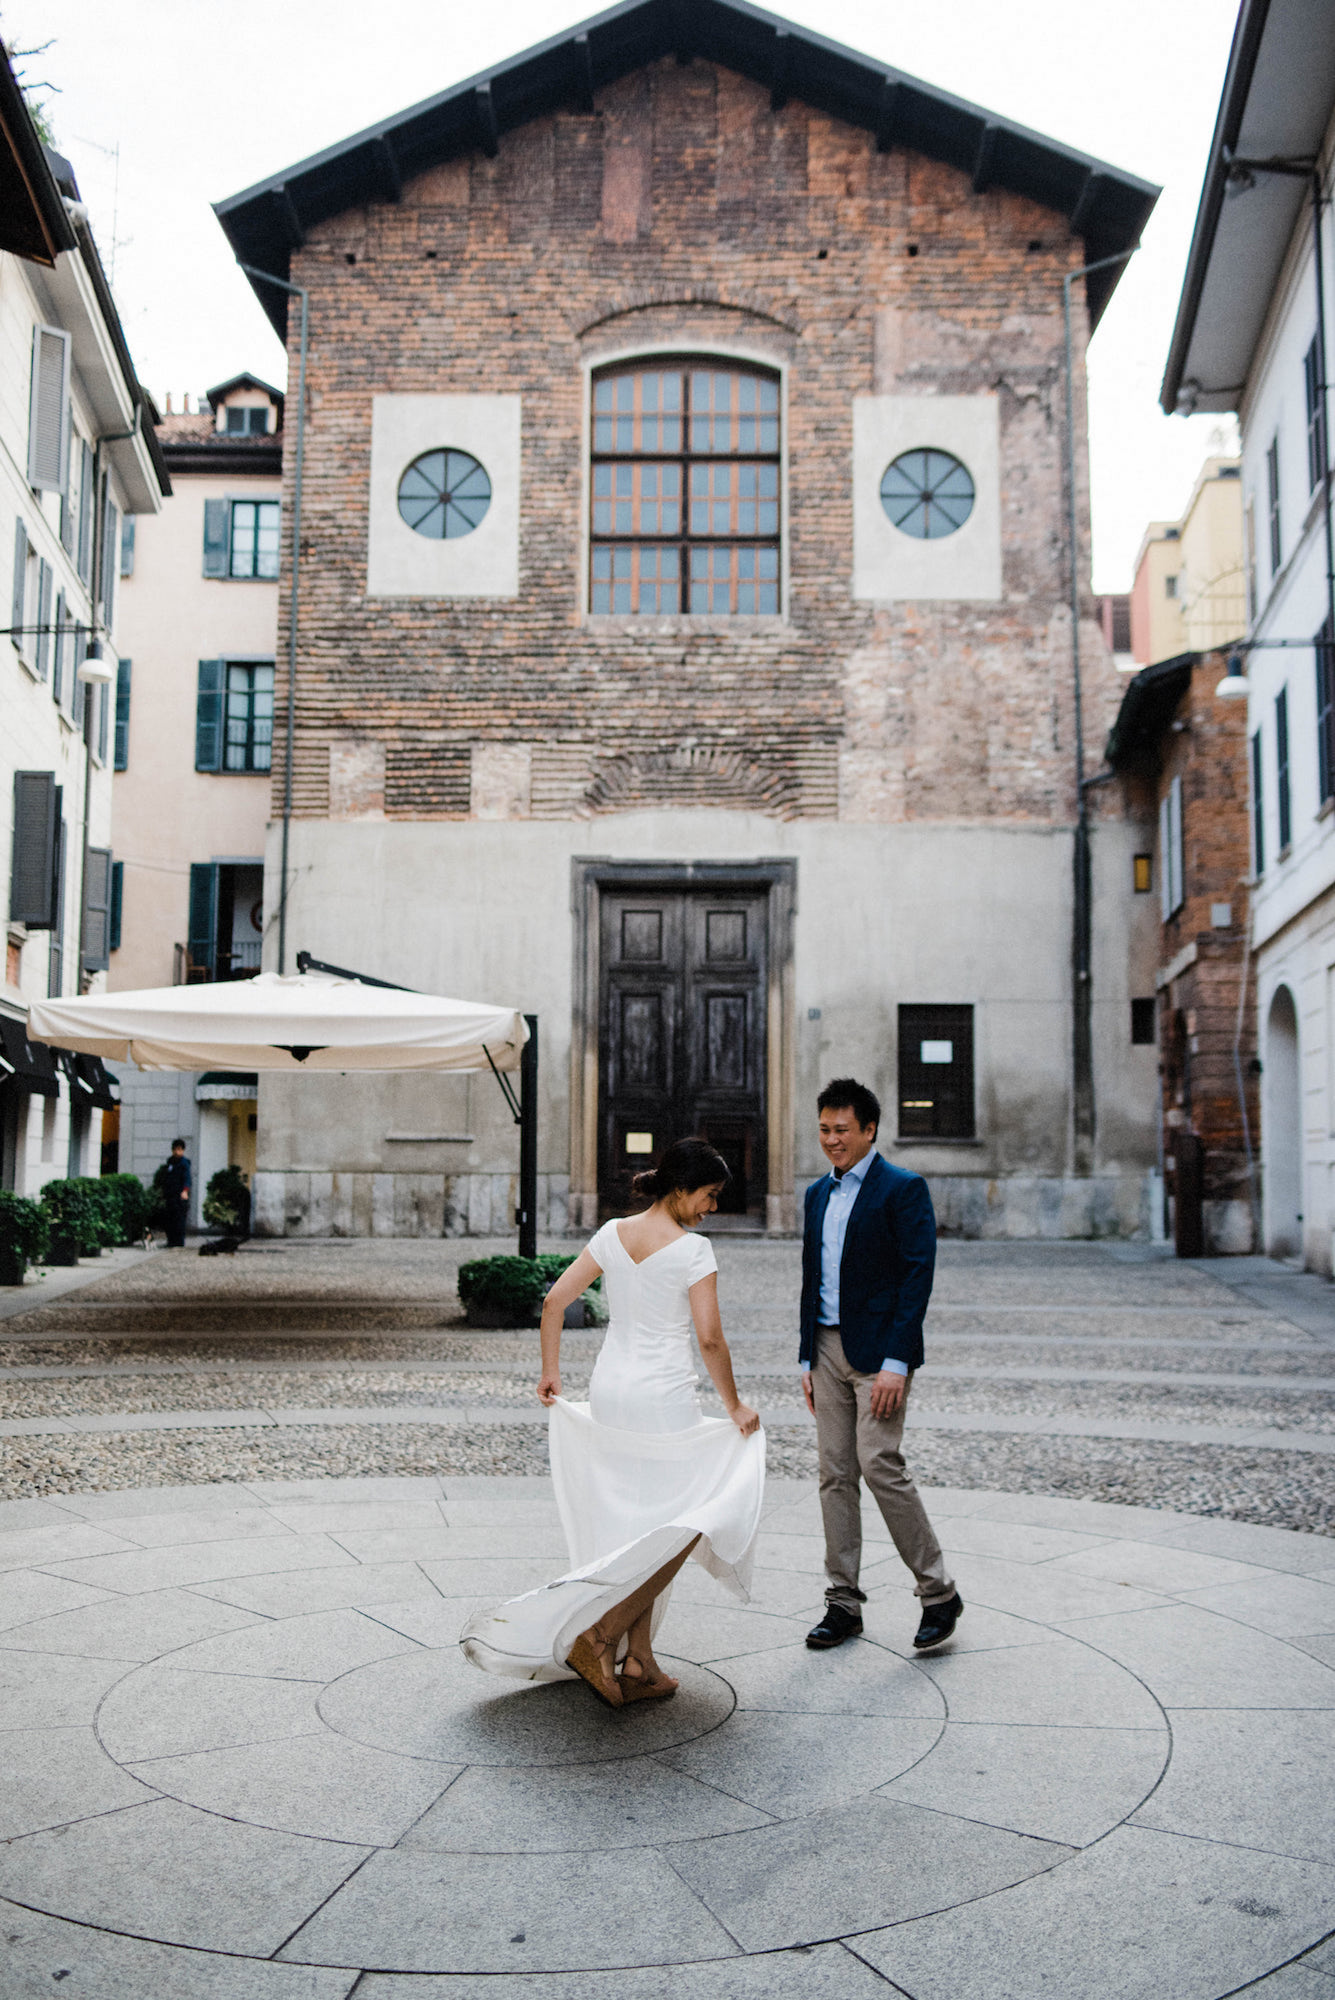 A portrait-oriented photo of a couple dancing in a square during their Italian Elopement in Milan.